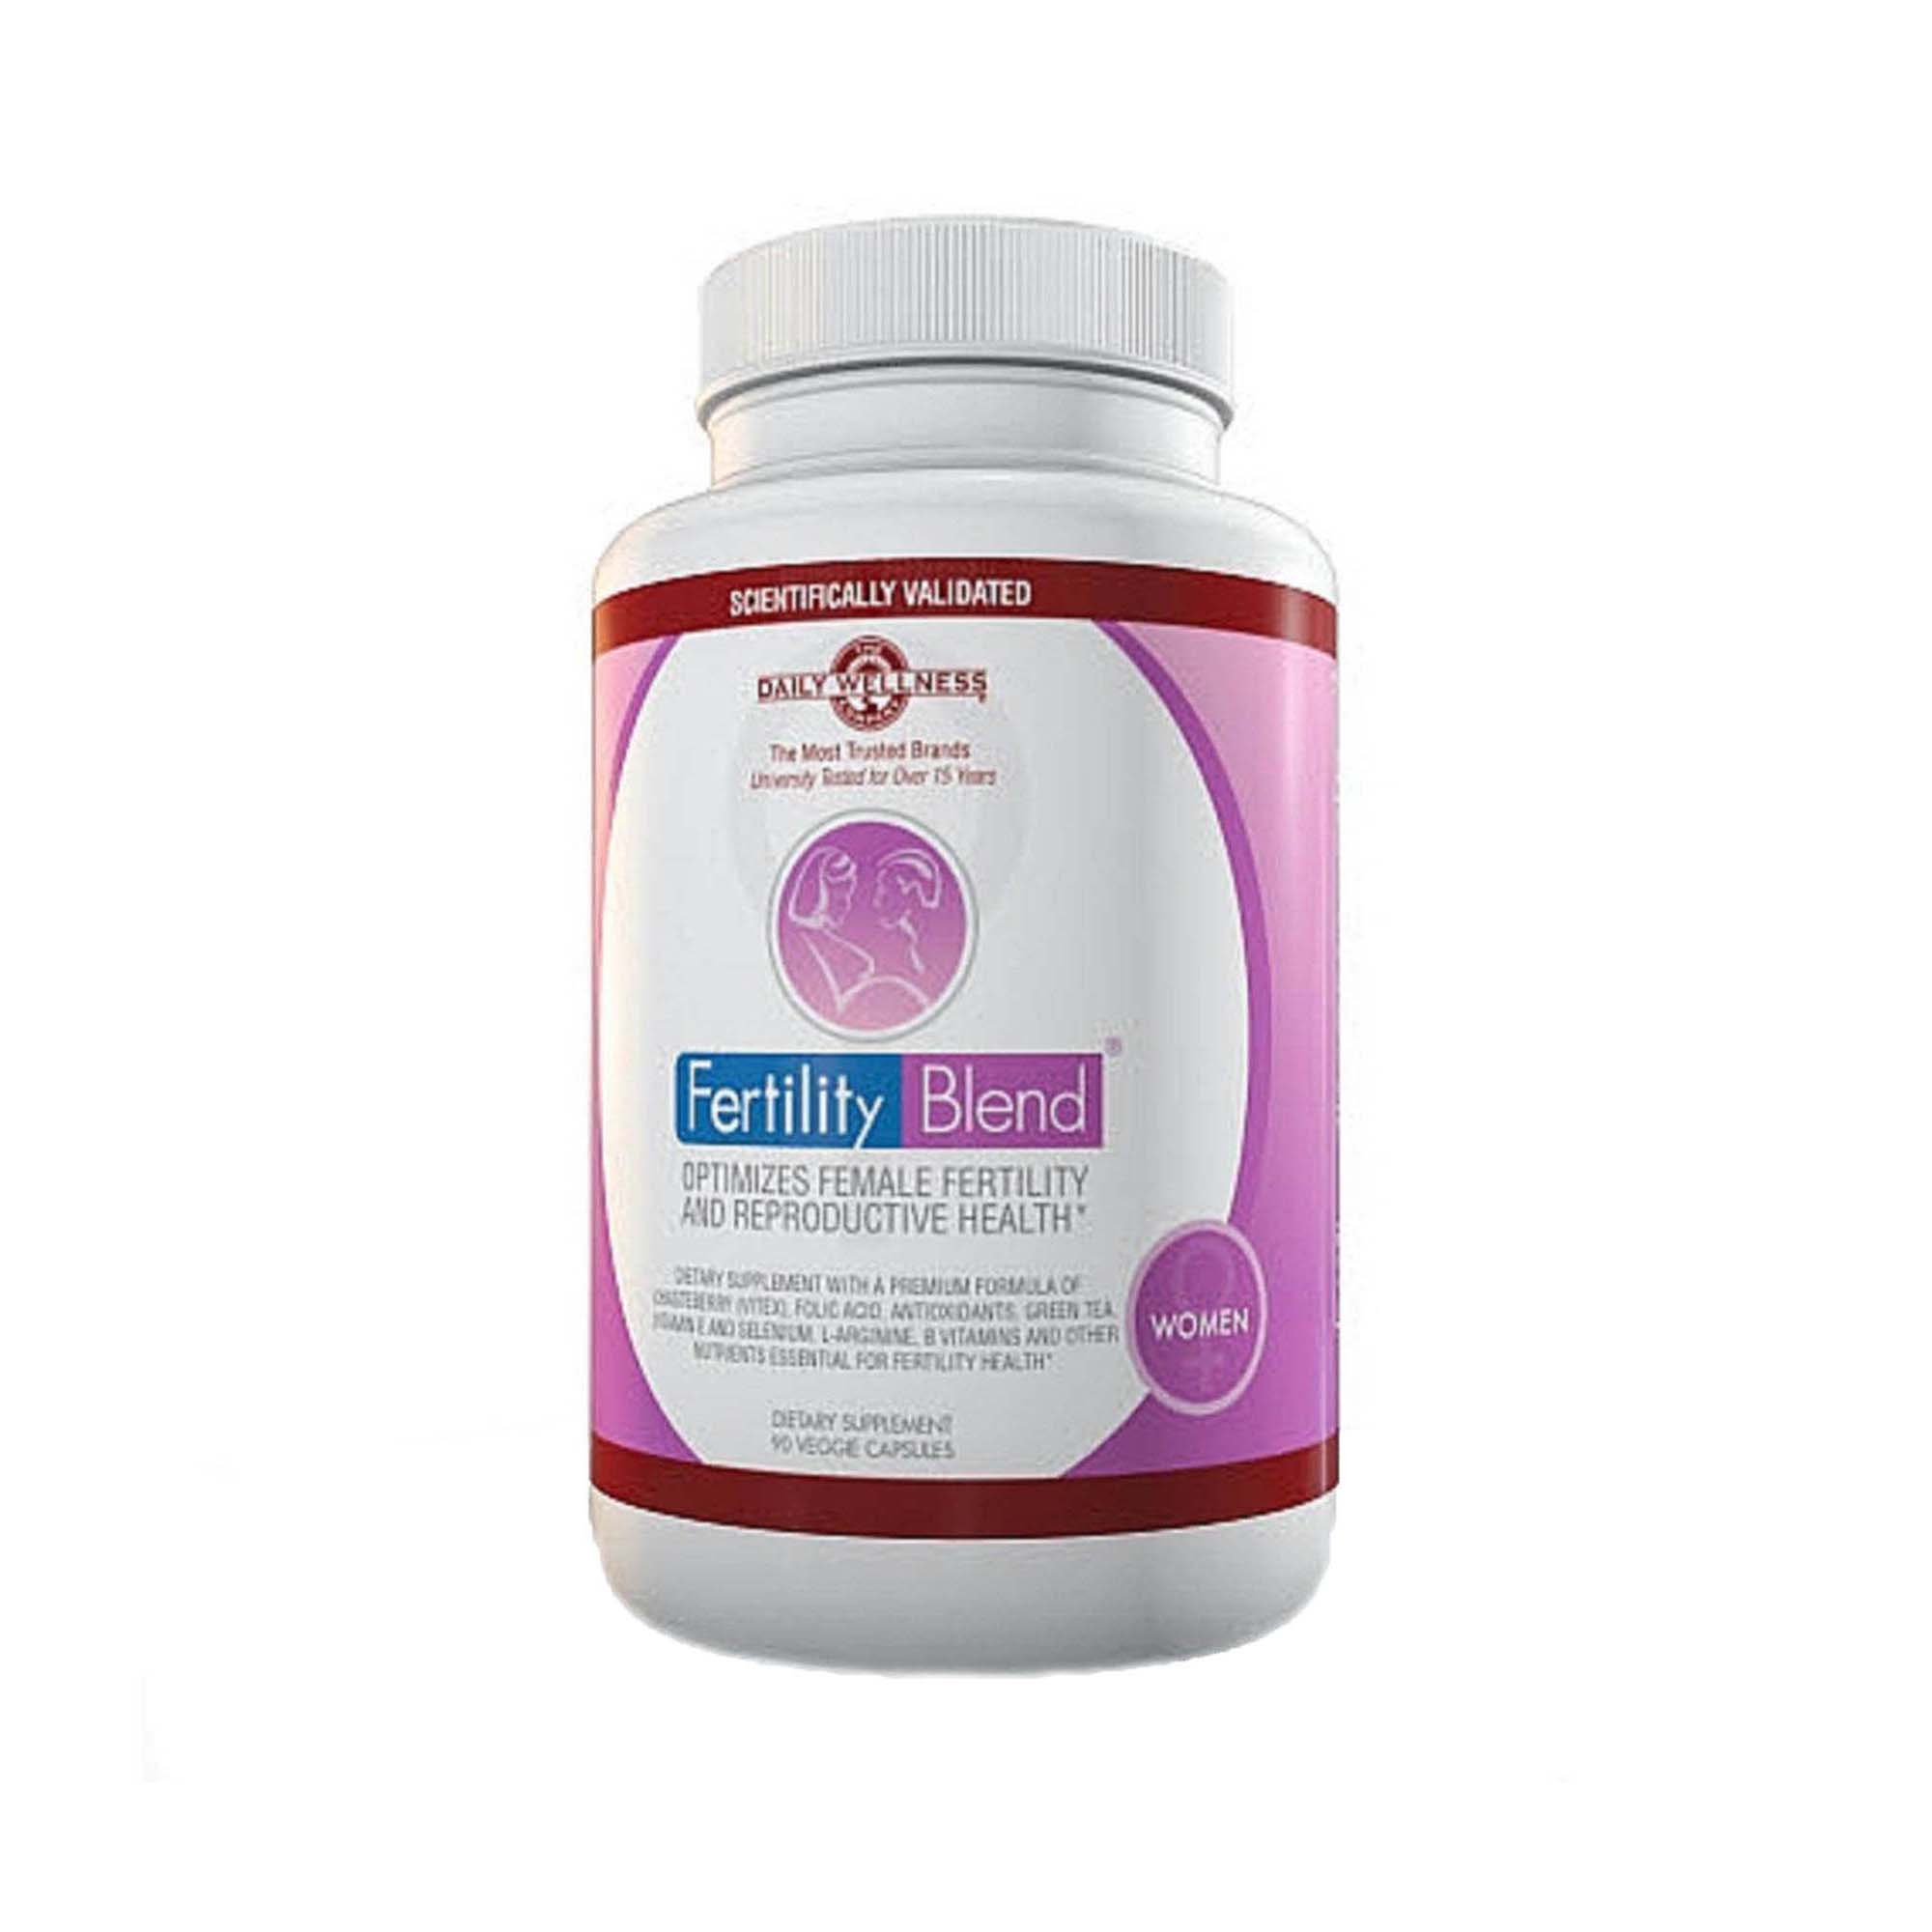 daily wellness company® fertility blend™ for women | gnc